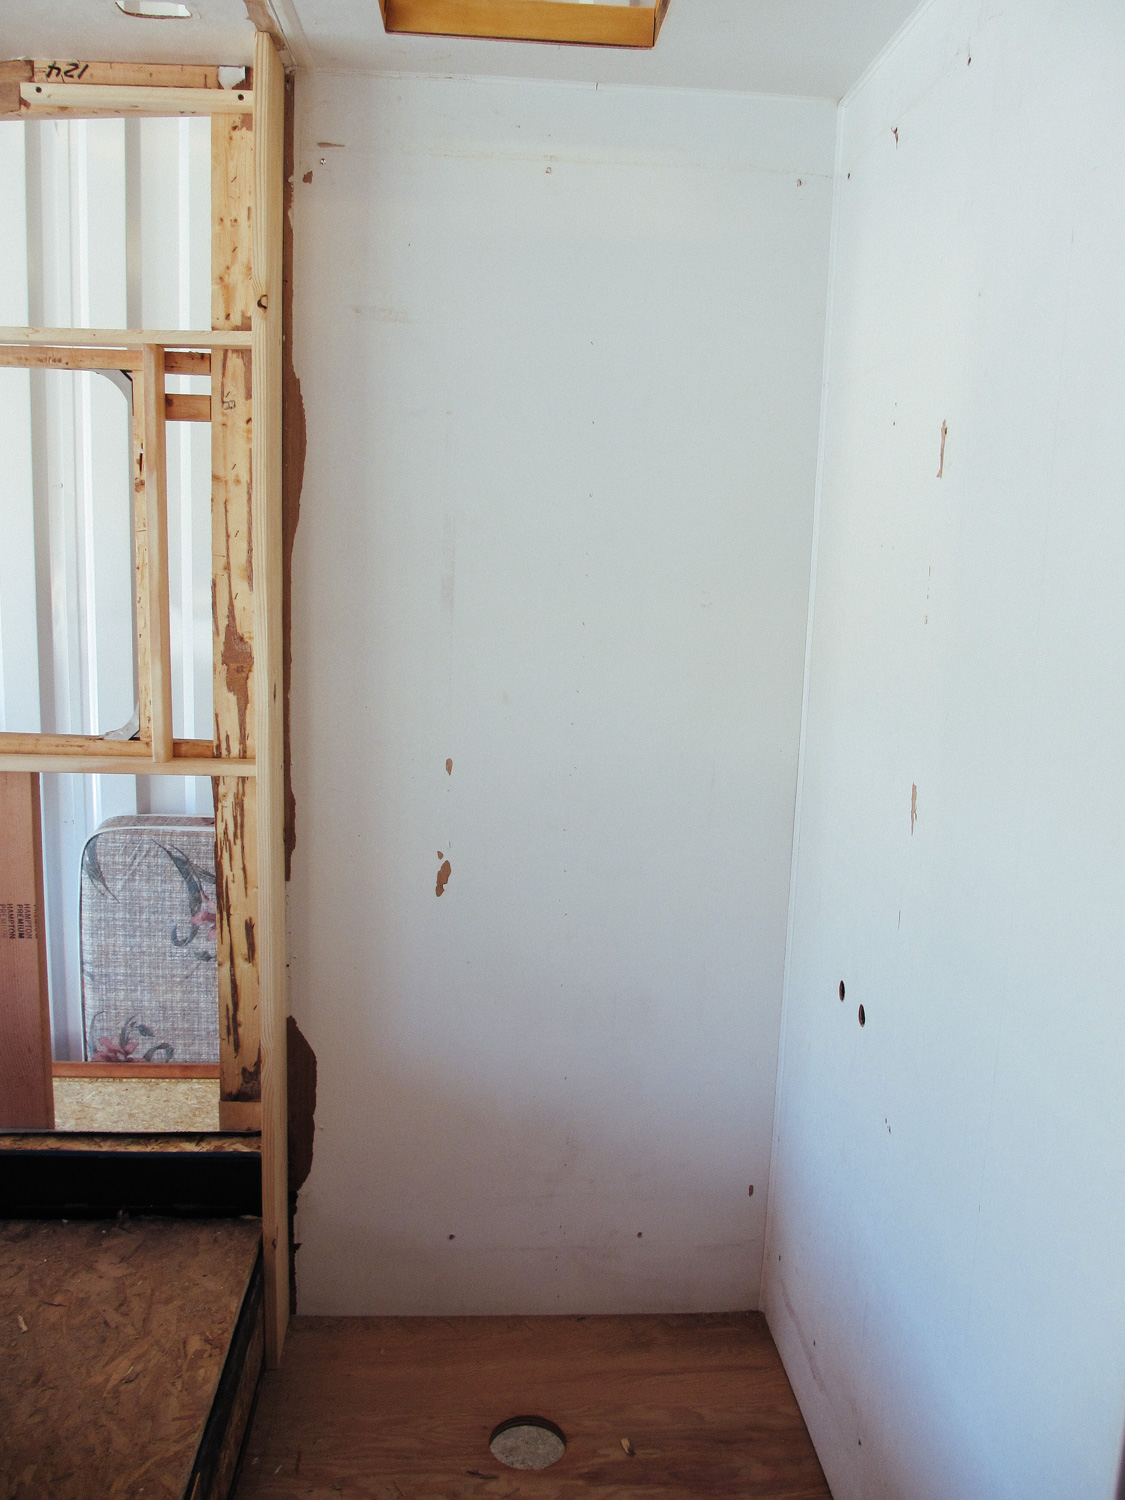 We also removed the shower and the wall that separated the shower and the bedroom.